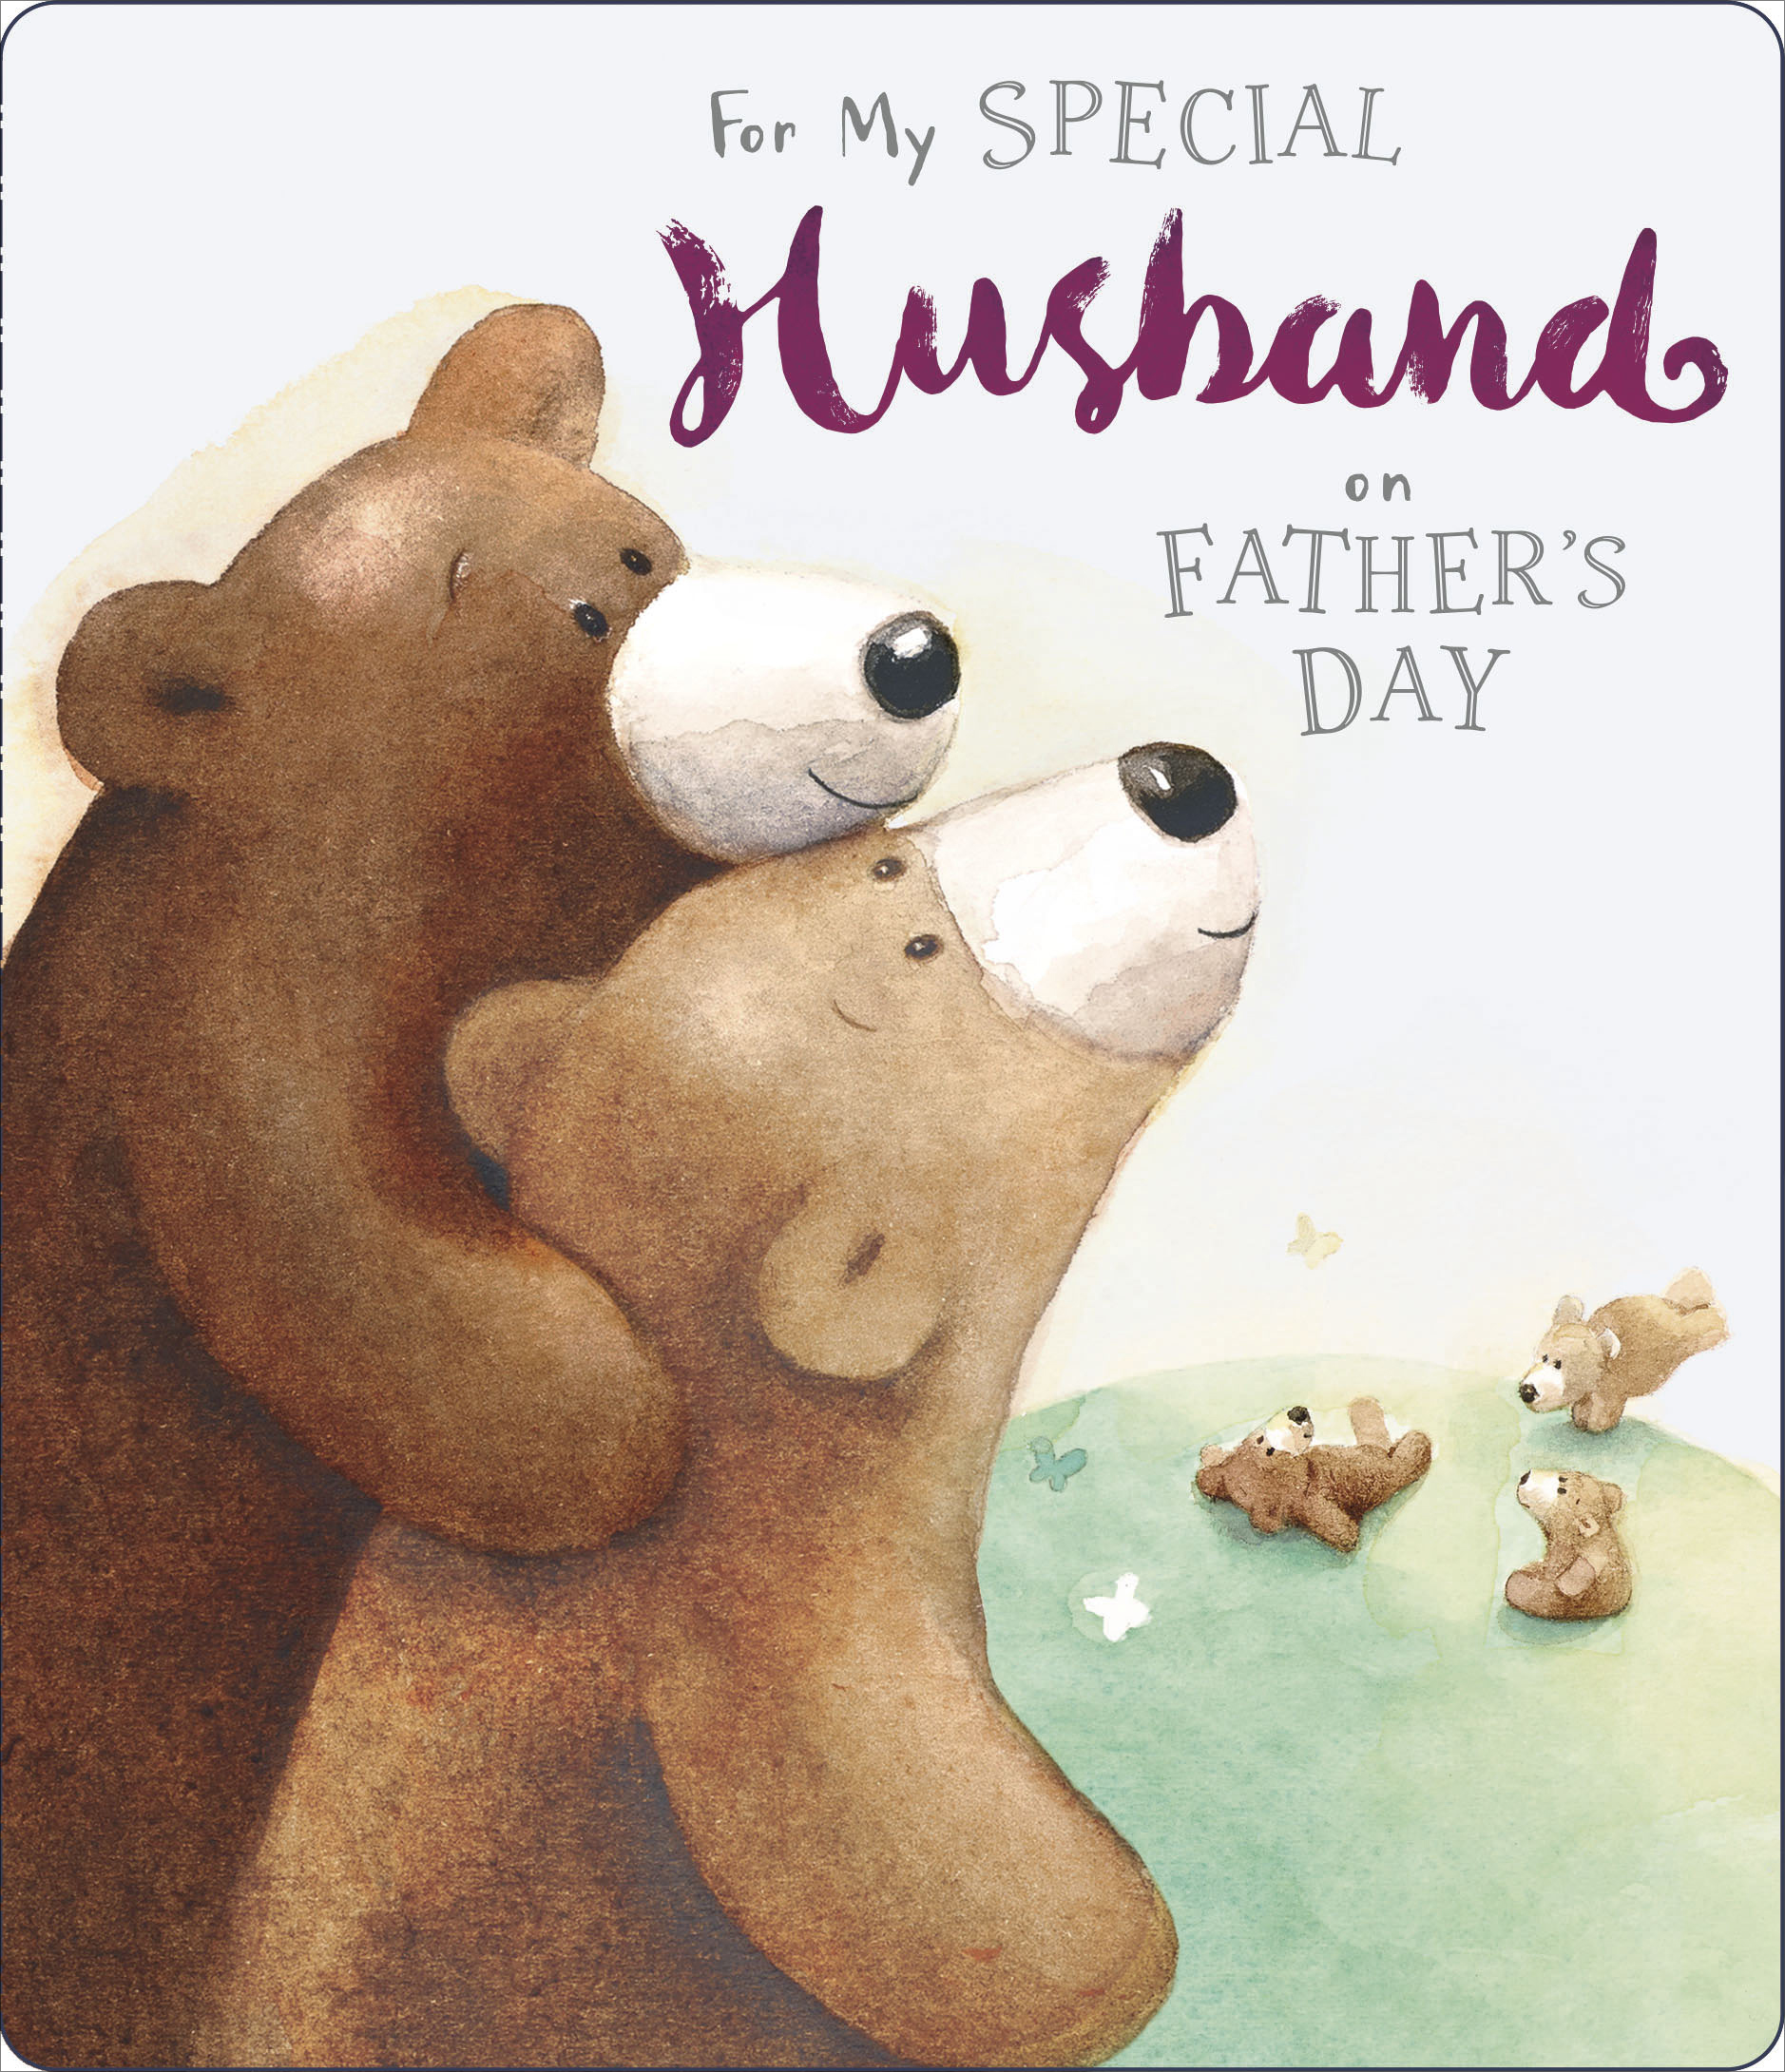 Special Husband Fathers Day Card Cute Albert Bear Range Greeting